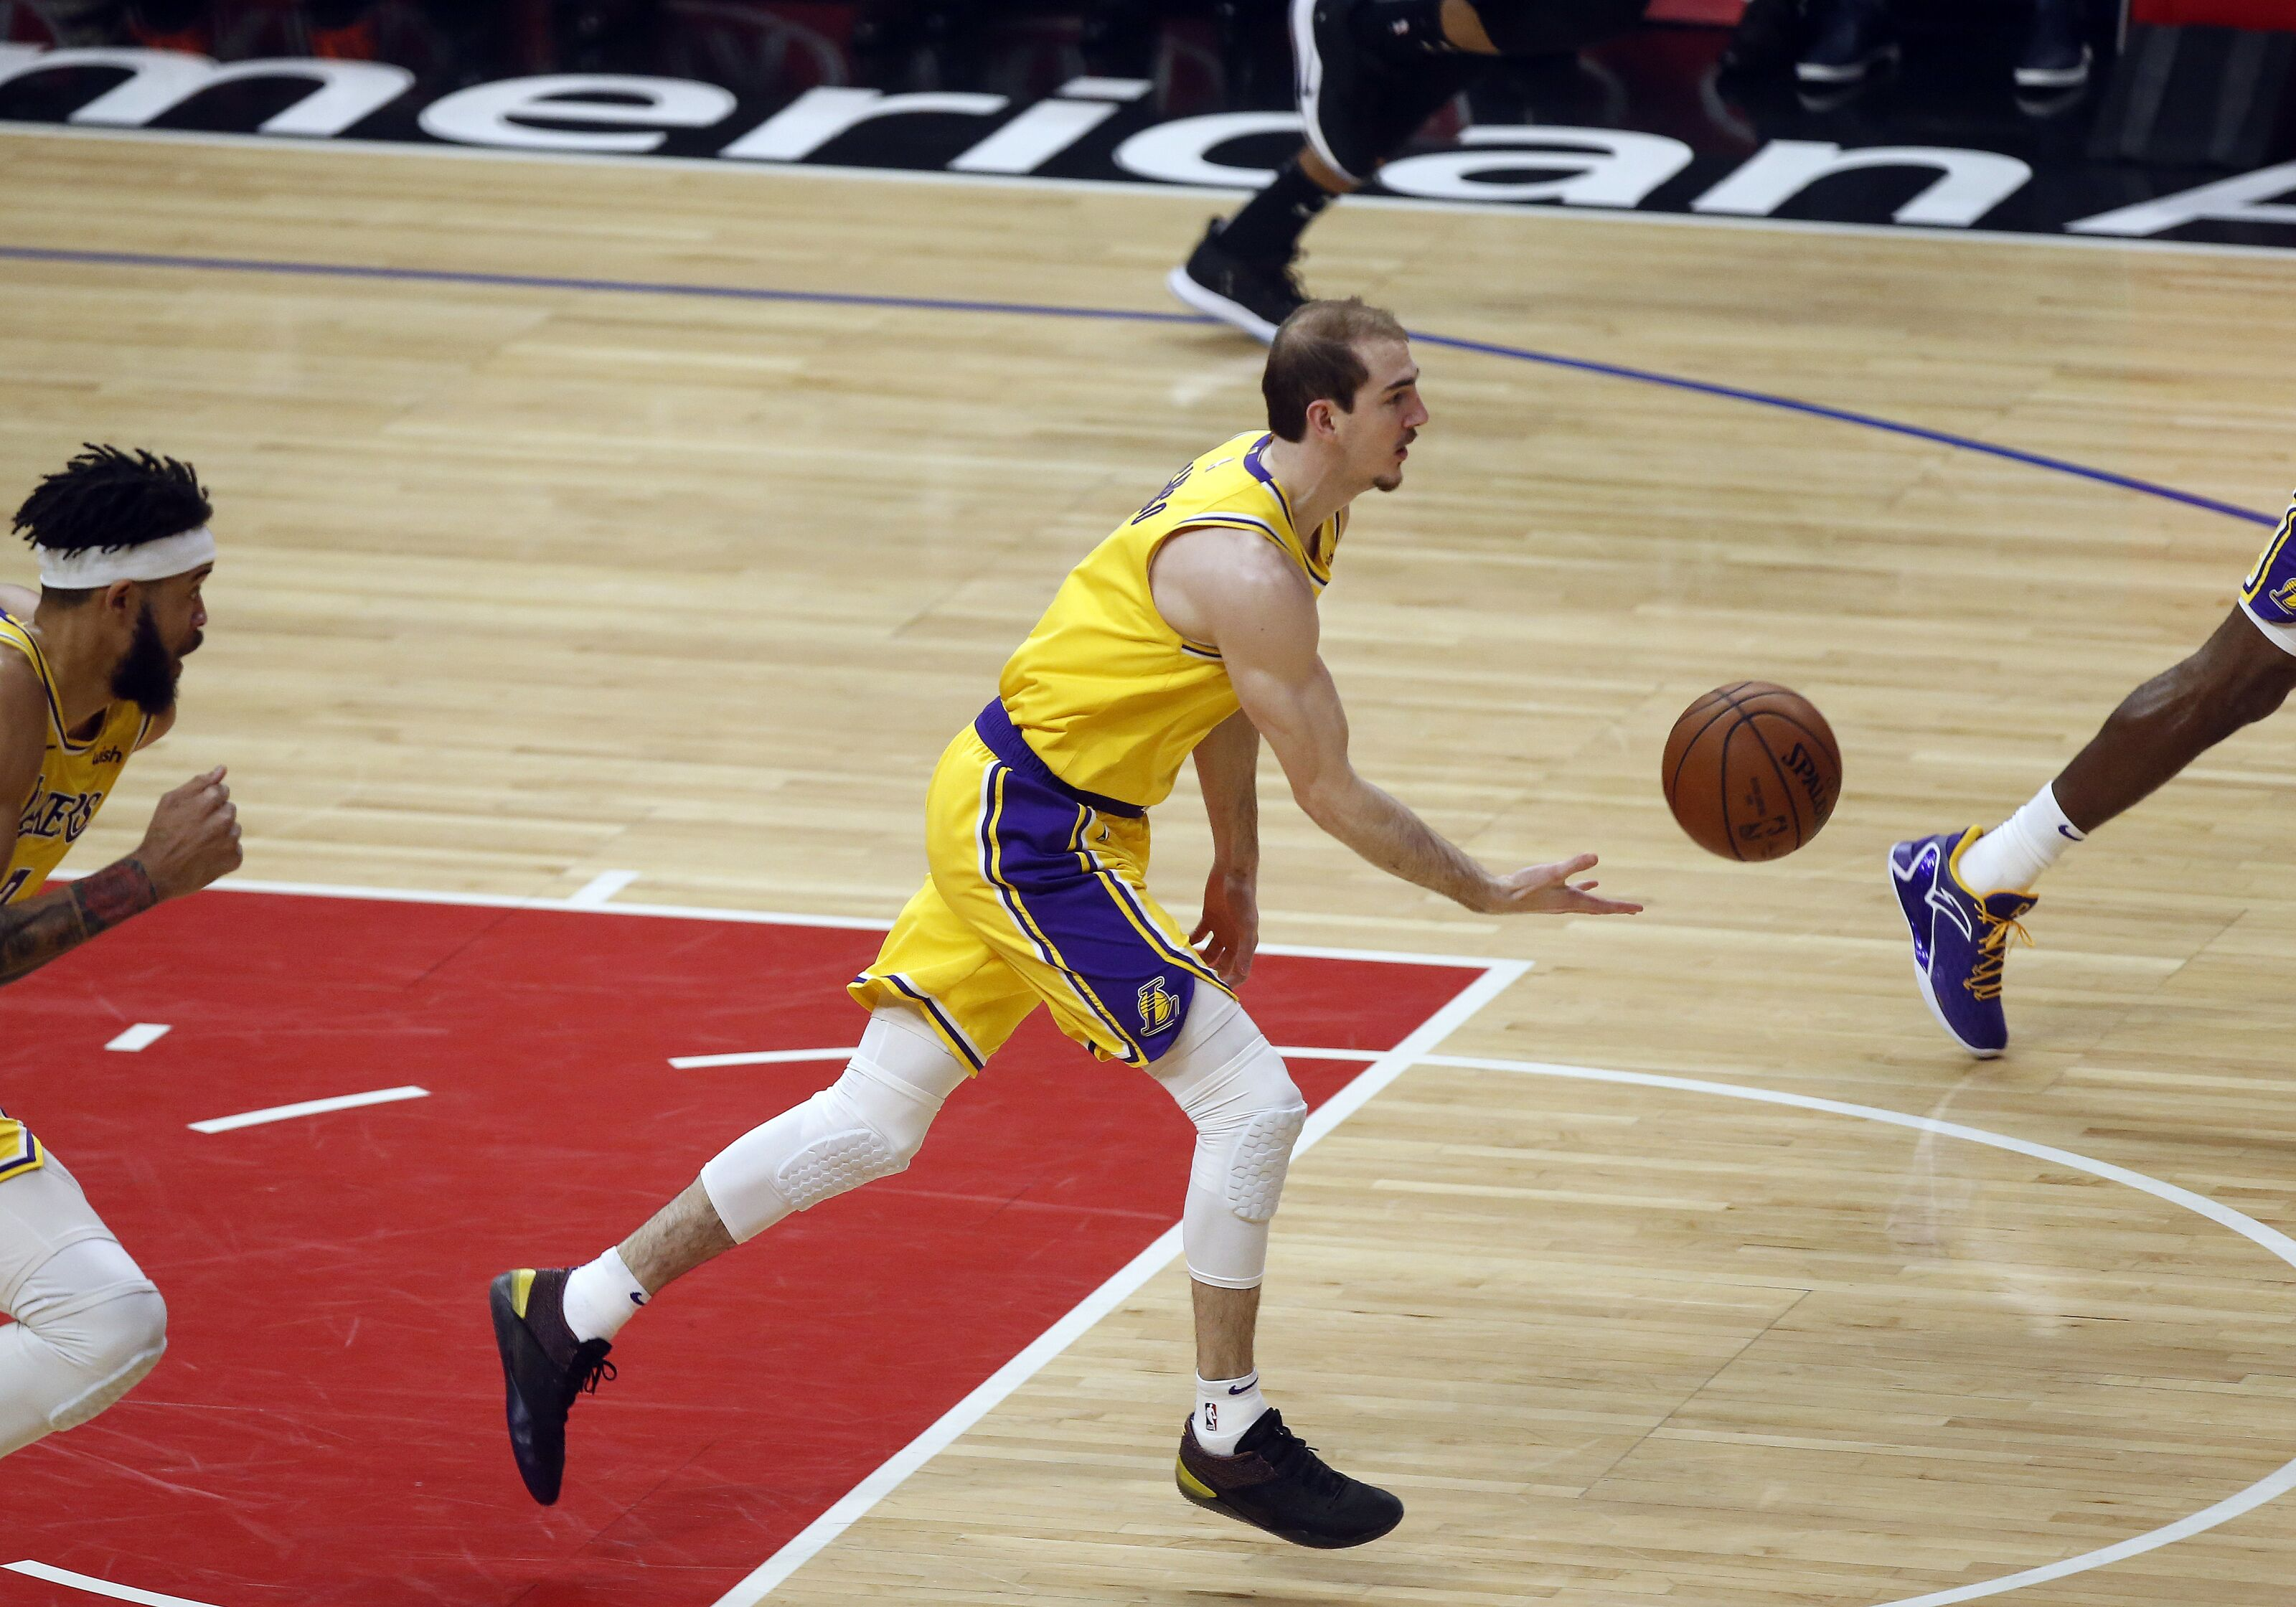 Los Angeles Lakers: Alex Caruso will be one of the biggest bargains